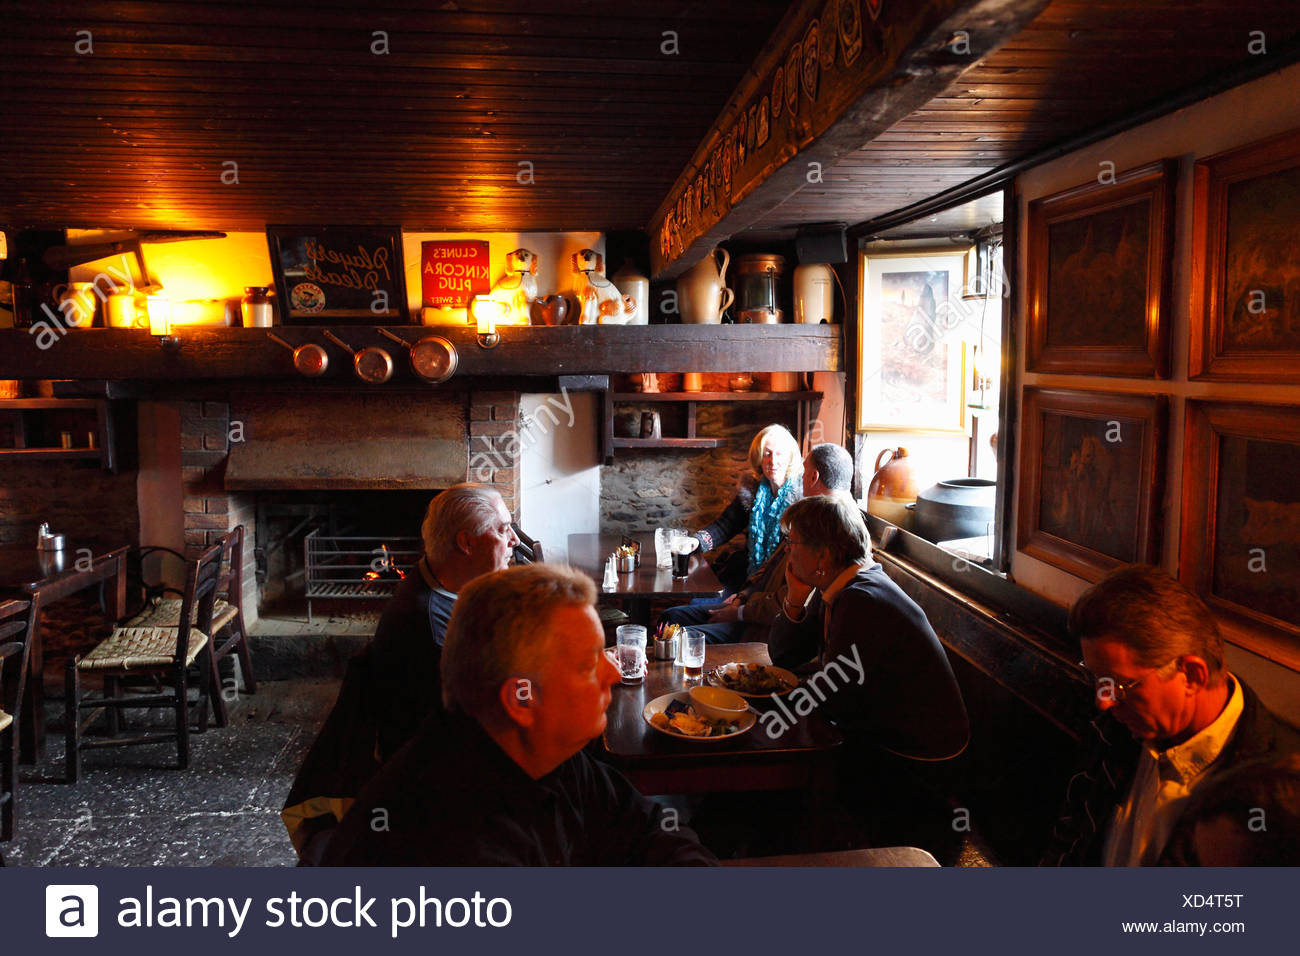 Durty Nelly's pub, Bunratty, County Clare, Ireland, British Isles, Europe - Stock Image